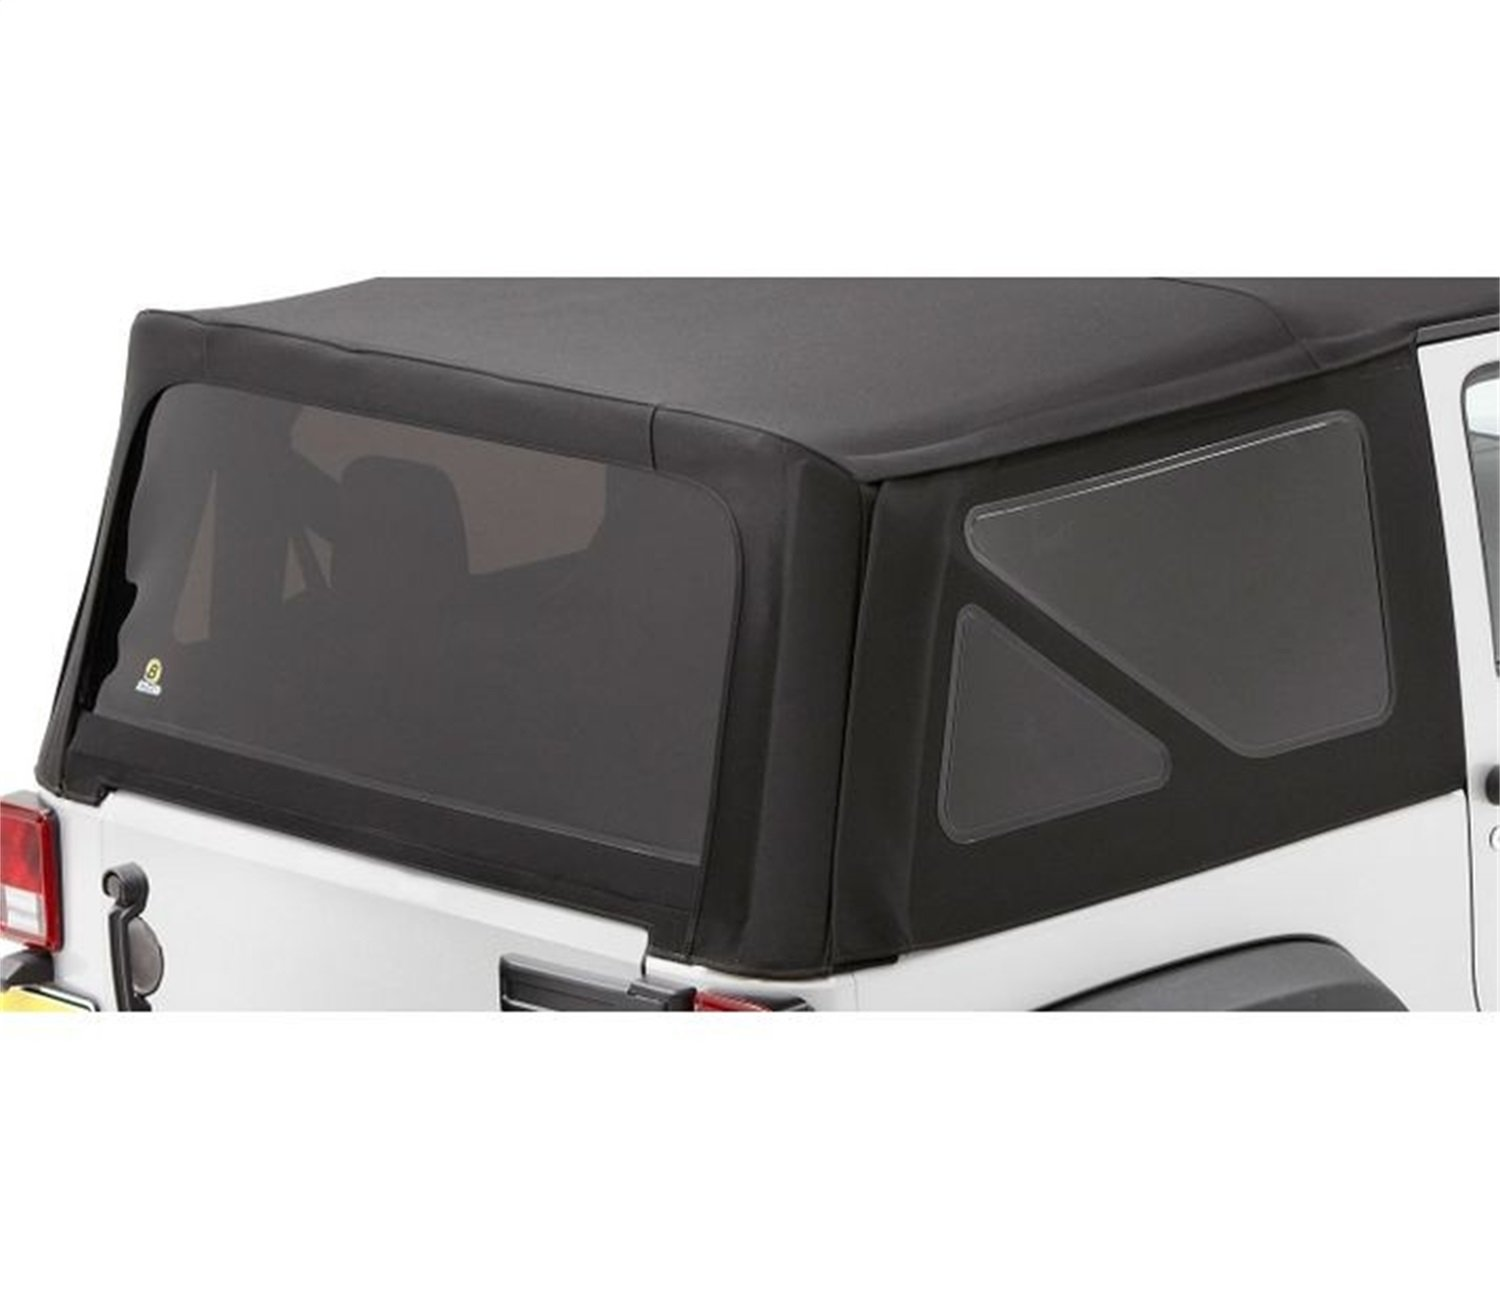 Bestop 58134-35 Black Diamond Tinted Window Kit Sailcloth Replace-A-Top for 2011-2018 Wrangler JK Unlimited